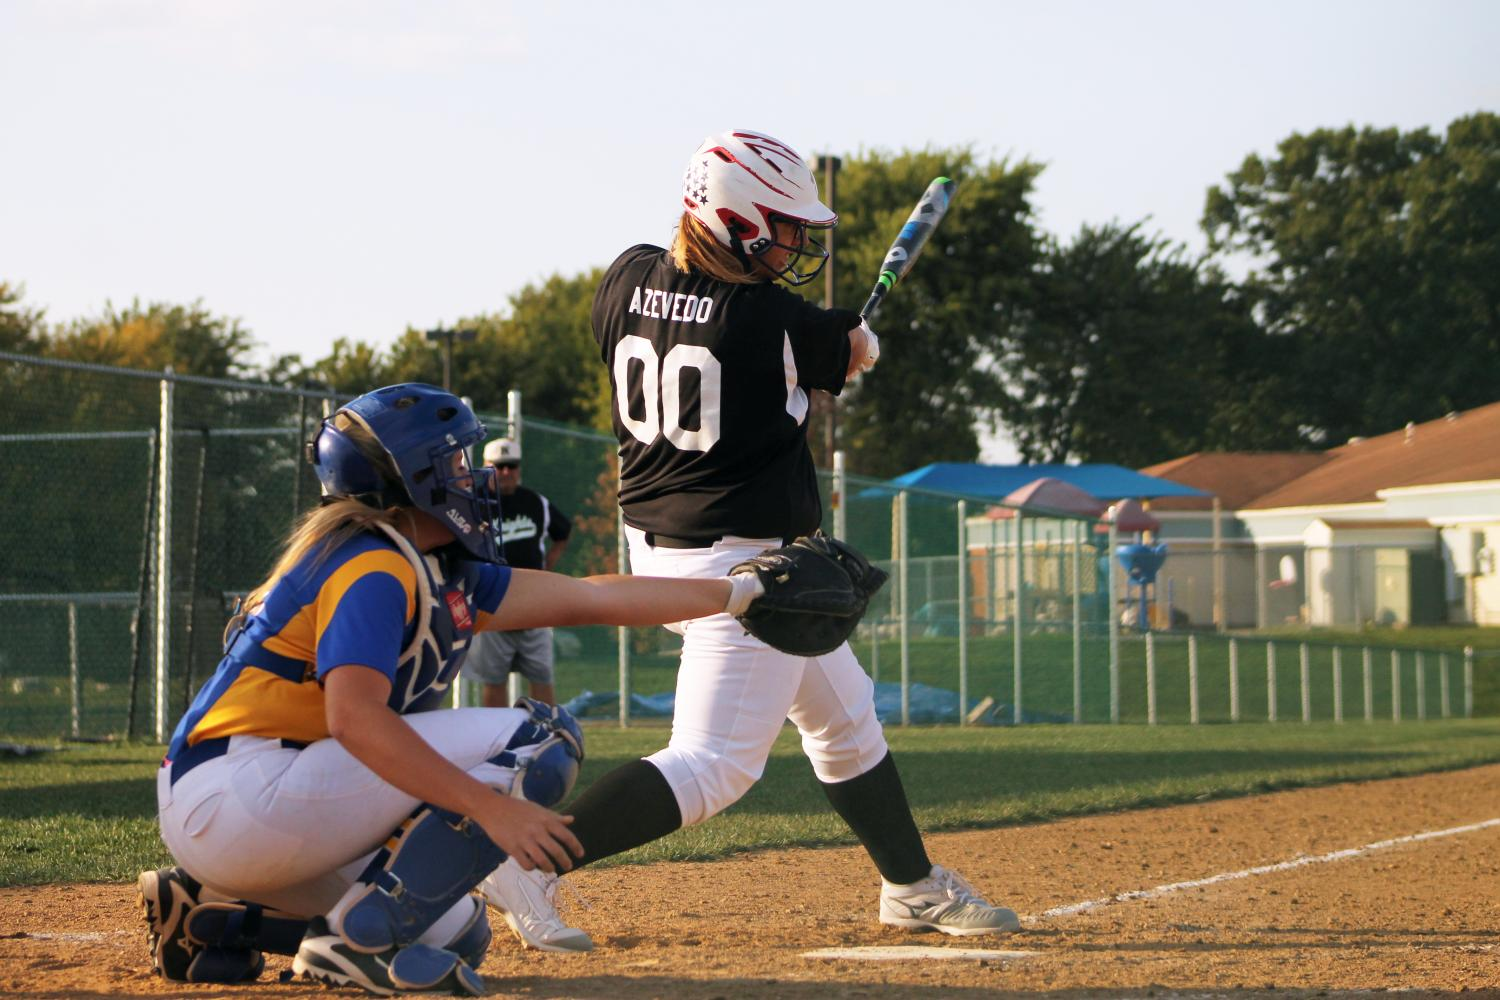 On Sept. 5, senior Brianna Azevedo scores the first run of the varsity softball game against FHHS. At the end of the game, seven more runs were hit by her teammates after her. They lost with a score of 8-13.